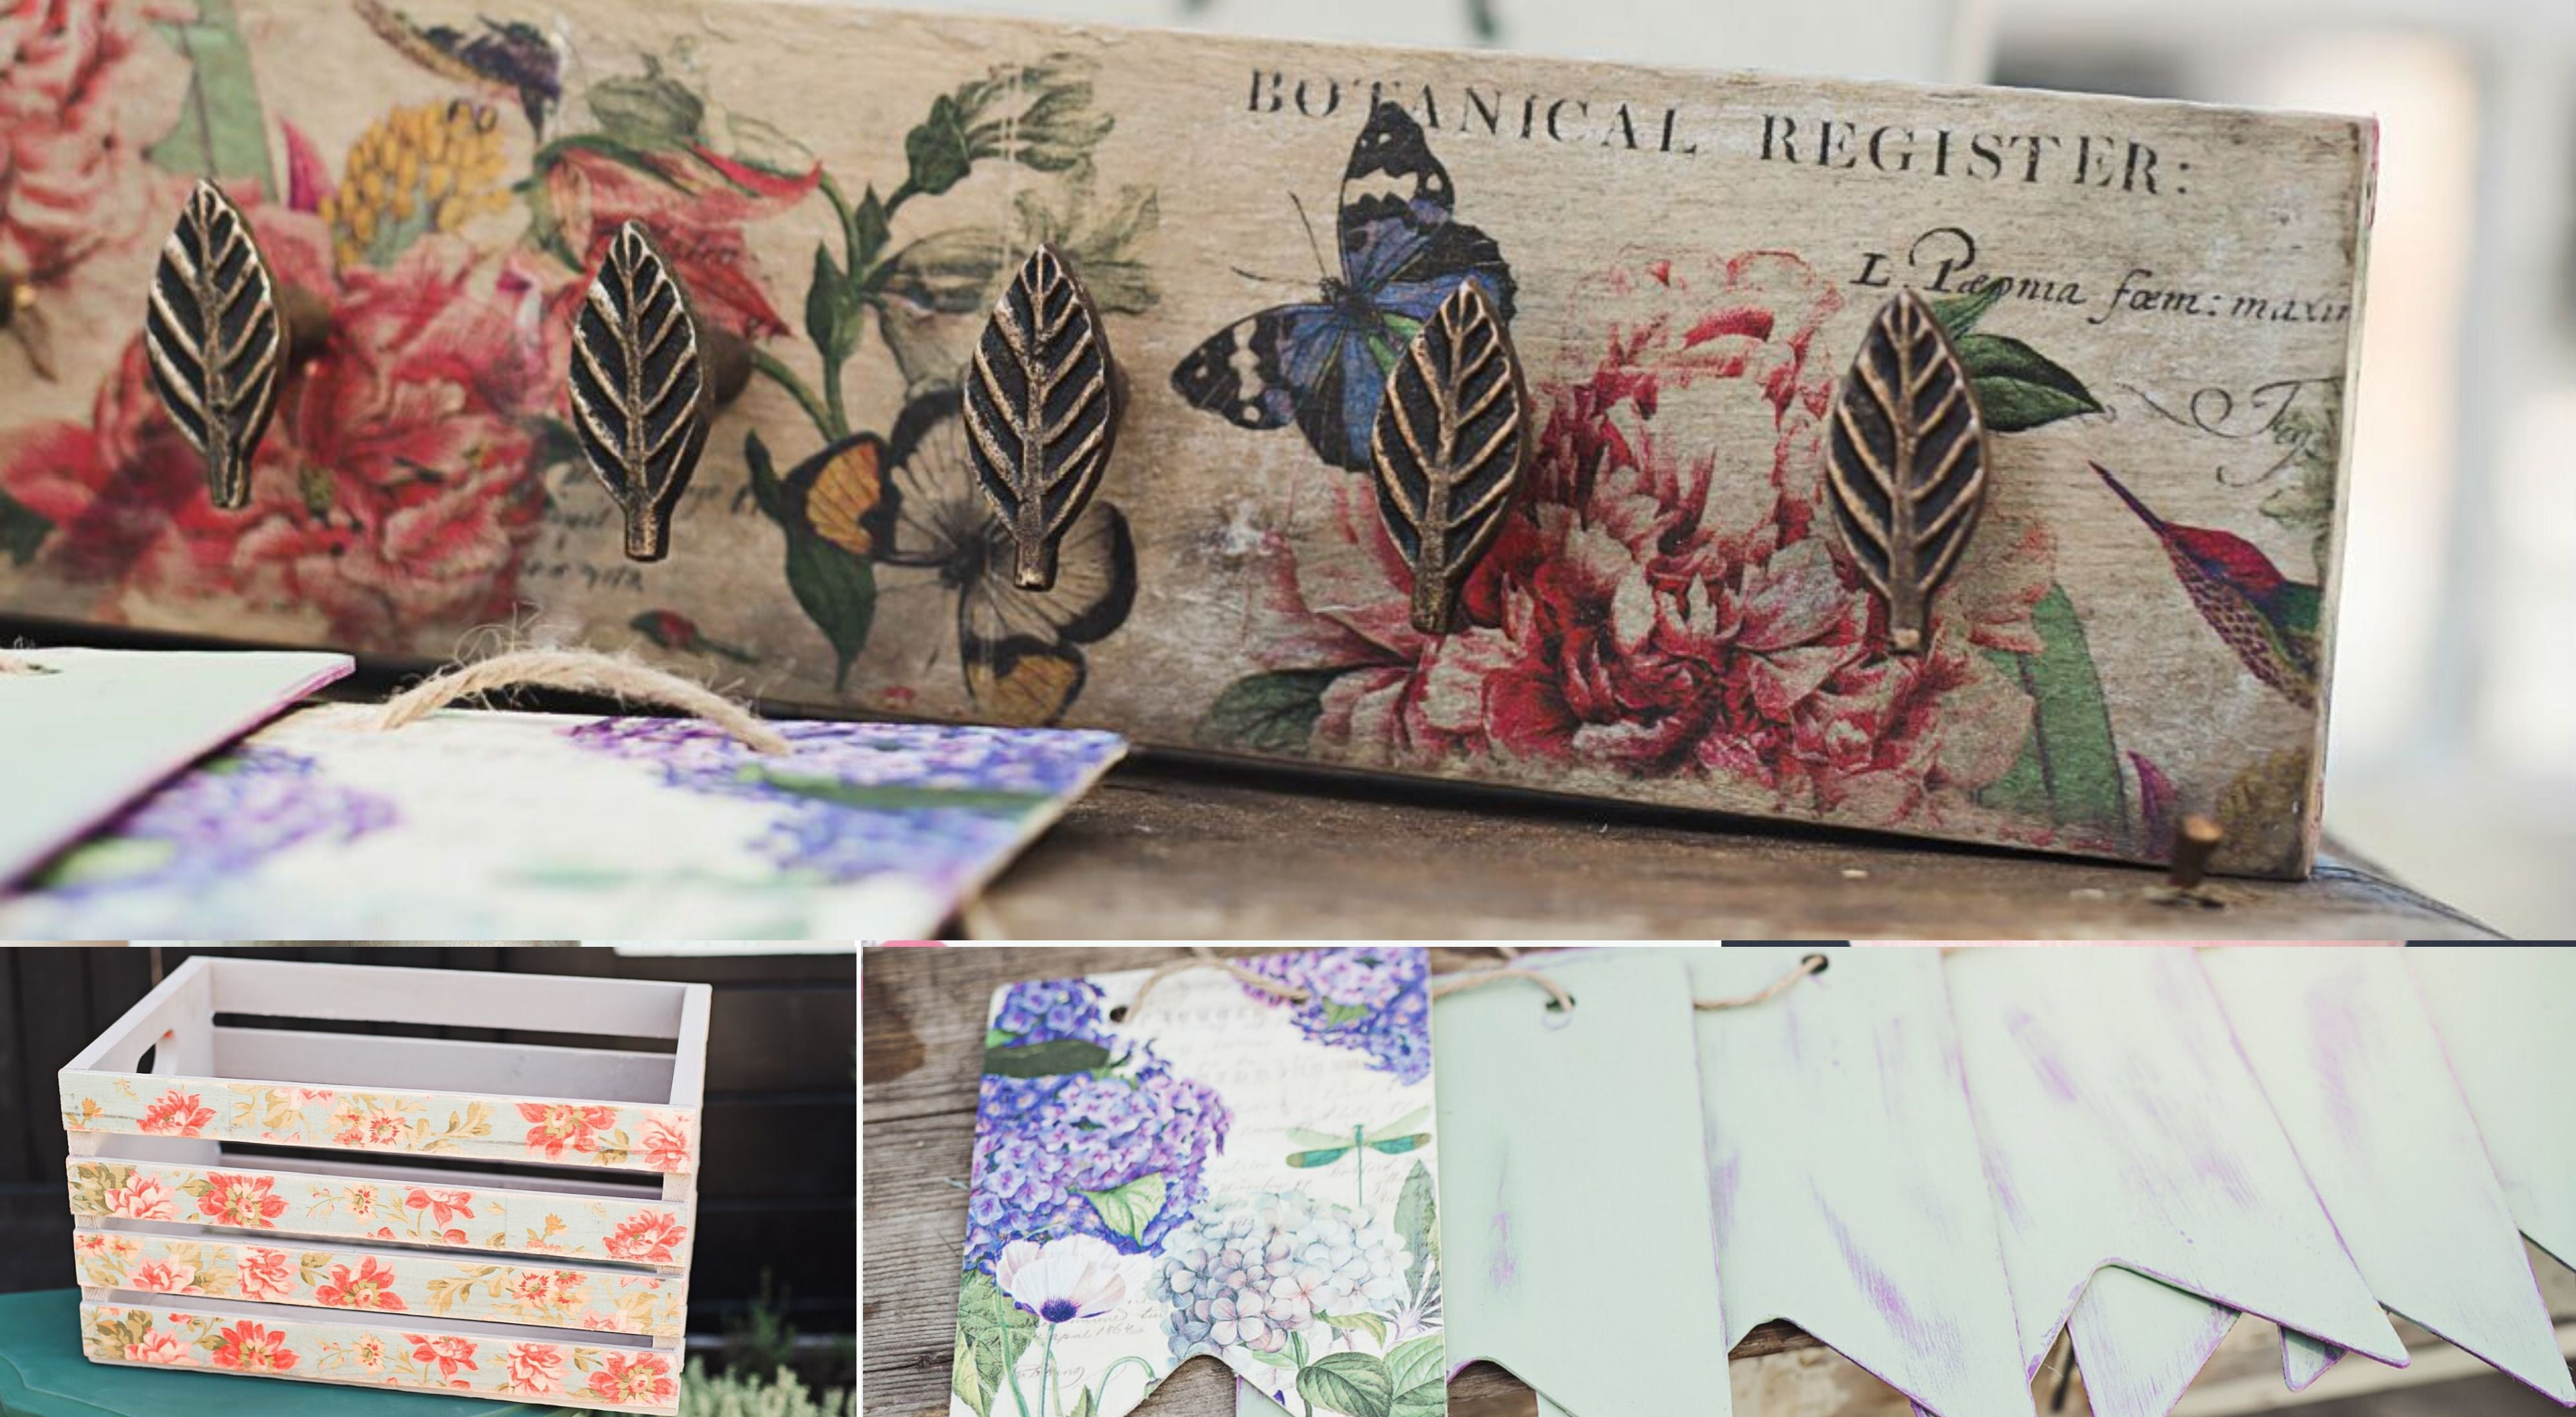 decoupaged craft ideas - diy upcycled coat rack, decoupage wood crate, floral wooden bunting decor